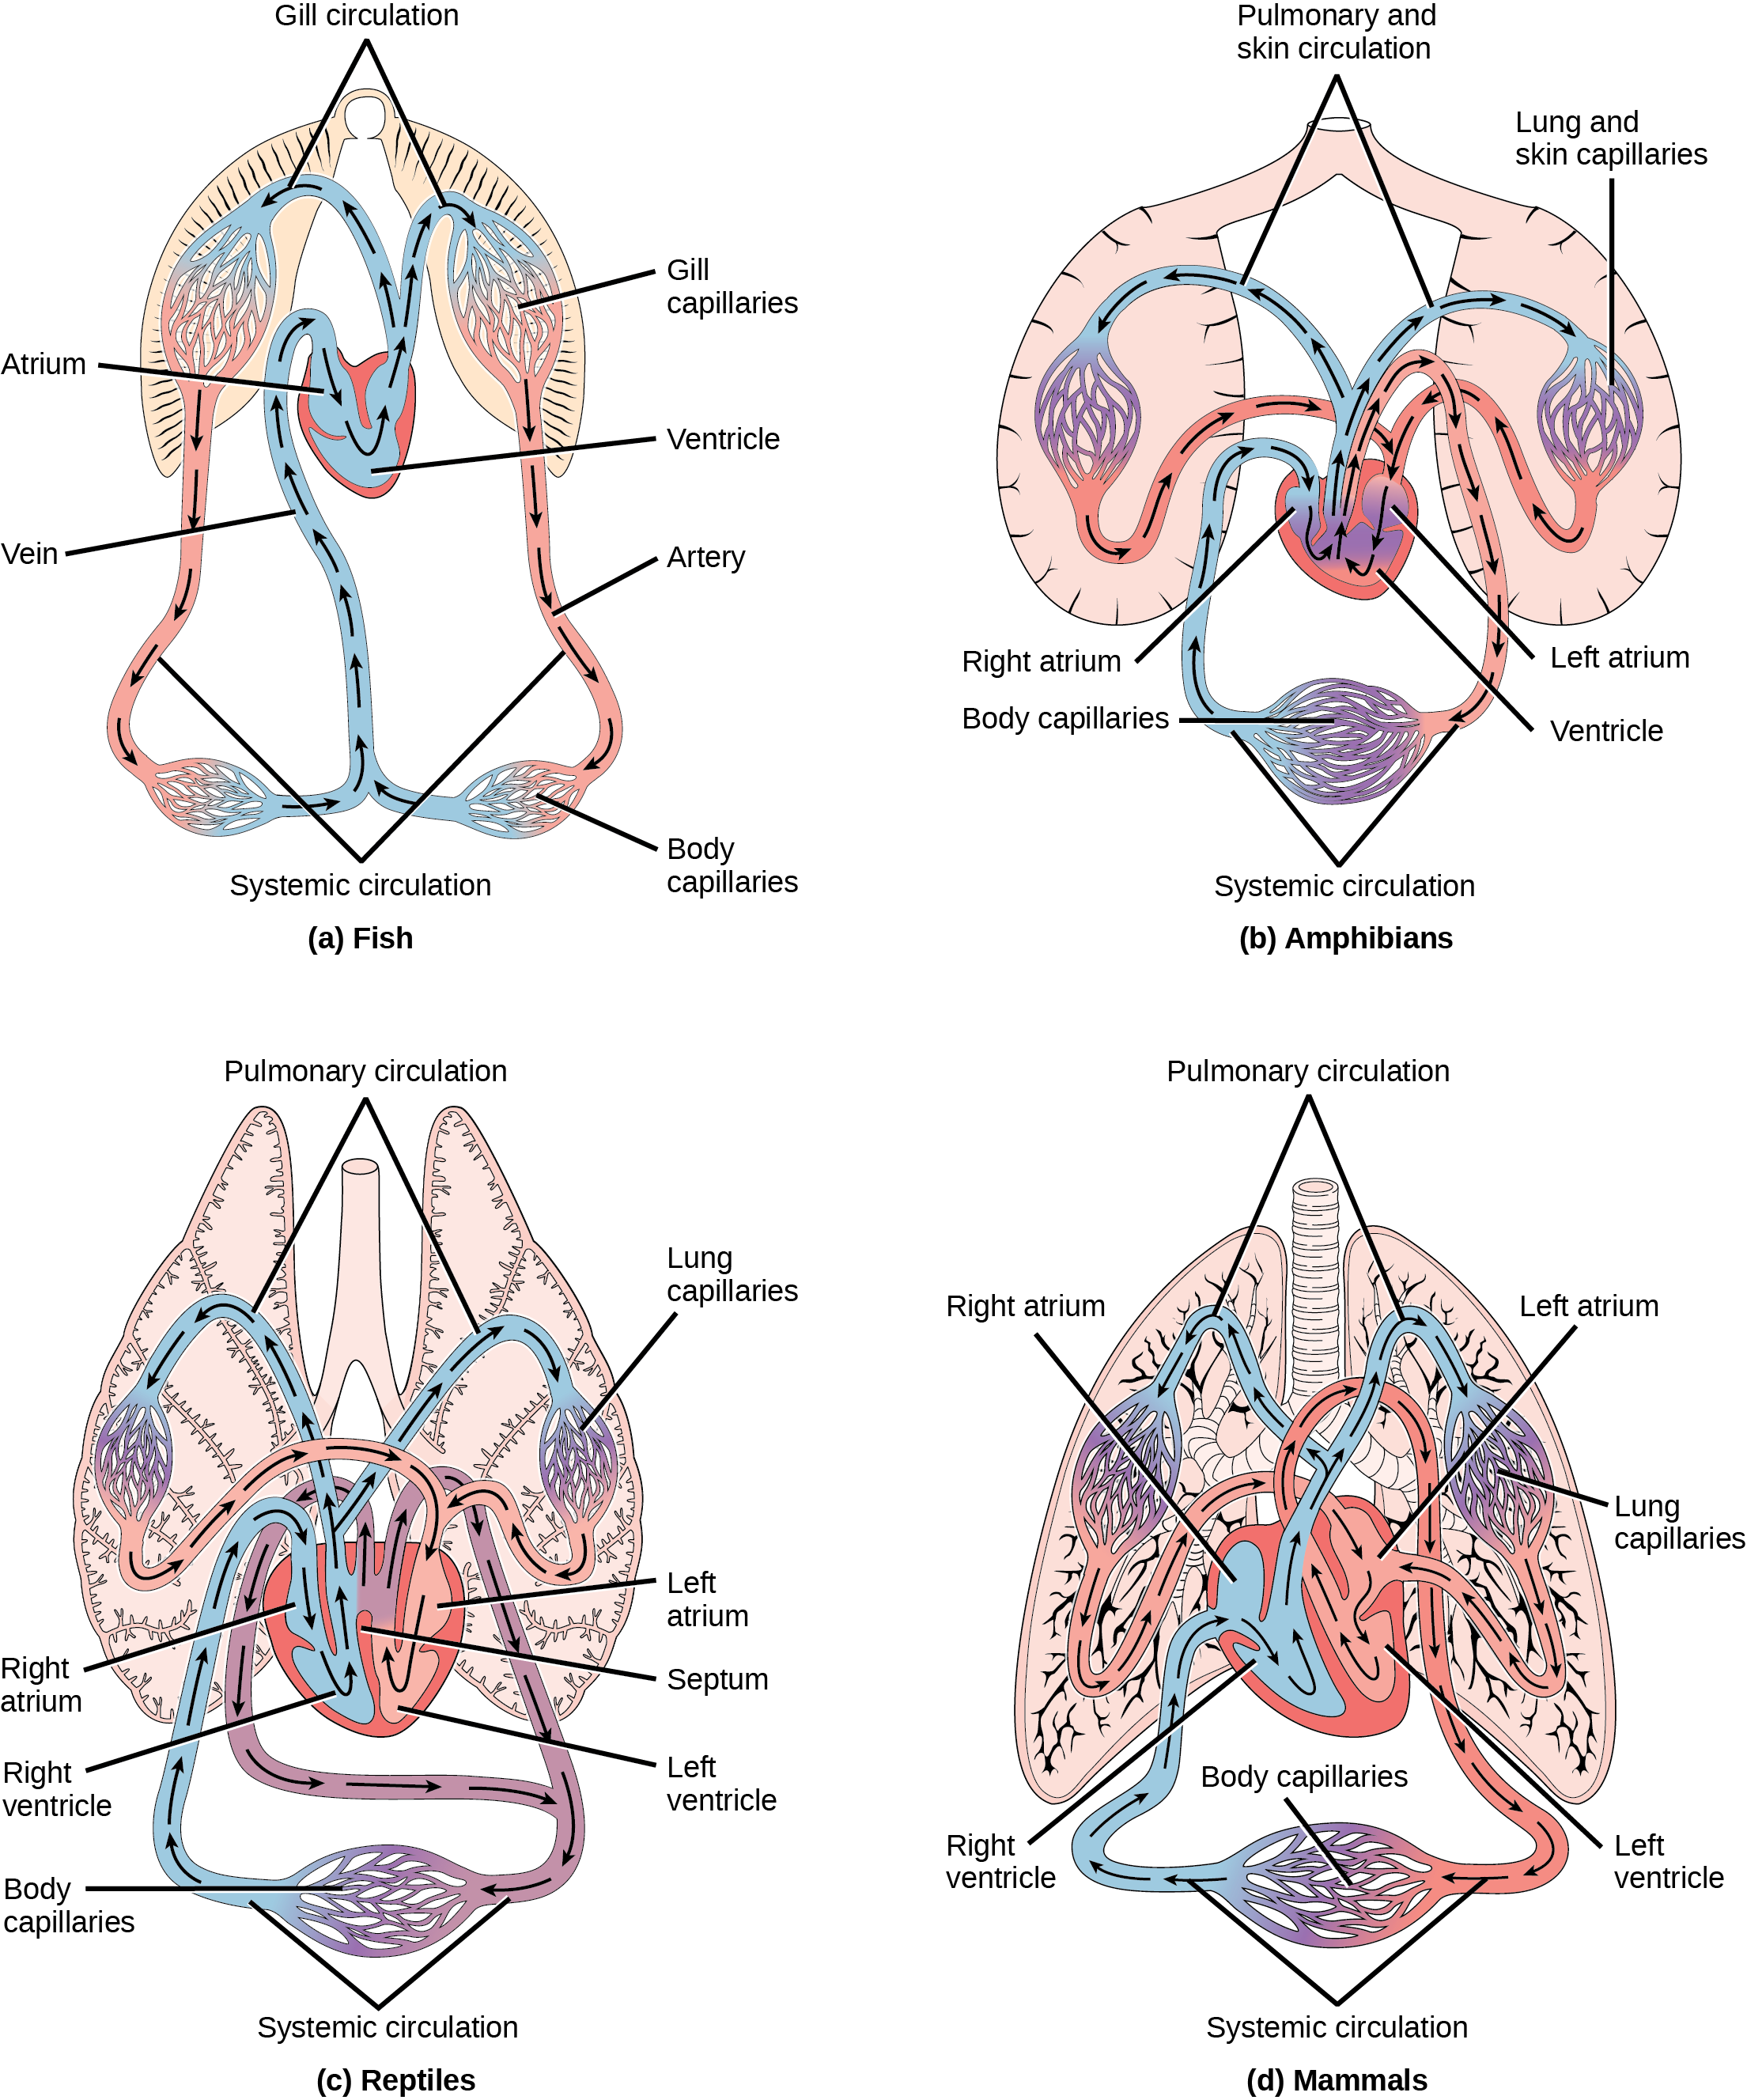 Illustration A shows the circulatory system of fish, which have a two-chambered heart with one atrium and one ventricle. Blood in systemic circulation flows from the body into the atrium, then into the ventricle. Blood exiting the heart enters gill circulation, where gases are exchanged by gill capillaries. From the gills blood re-enters systemic circulation, where gases in the body are exchanged by body capillaries. Illustration B shows the circulatory system of amphibians, which have a three-chambered heart with two atriums and one ventricle. Blood in systemic circulation enters the heart, flows into the right atrium, then into the ventricle. Blood leaving the ventricle enters pulmonary and skin circulation. Capillaries in the lung and skin exchange gases, oxygenating the blood. From the lungs and skin blood re-enters the heart through the left atrium. Blood flows into the ventricle, where it mixes with blood from systemic circulation. Blood leaves the ventricle and enters systemic circulation. Illustration C shows the circulatory system of reptiles, which have a four-chambered heart. The right and left ventricle are separated by a septum, but there is no septum separating the right and left atrium, so there is some mixing of blood between these two chambers. Blood from systemic circulation enters the right atrium, then flows from the right ventricle and enters pulmonary circulation, where blood is oxygenated in the lungs. From the lungs blood travels back into the heart through the left atrium. Because the left and right atrium are not separated, some mixing of oxygenated and deoxygenated blood occurs. Blood is pumped into the left ventricle, then into the body. Illustration D shows the circulatory system of mammals, which have a four-chambered heart. Circulation is similar to that of reptiles, but the four chambers are completely separate from one another, which improves efficiency.